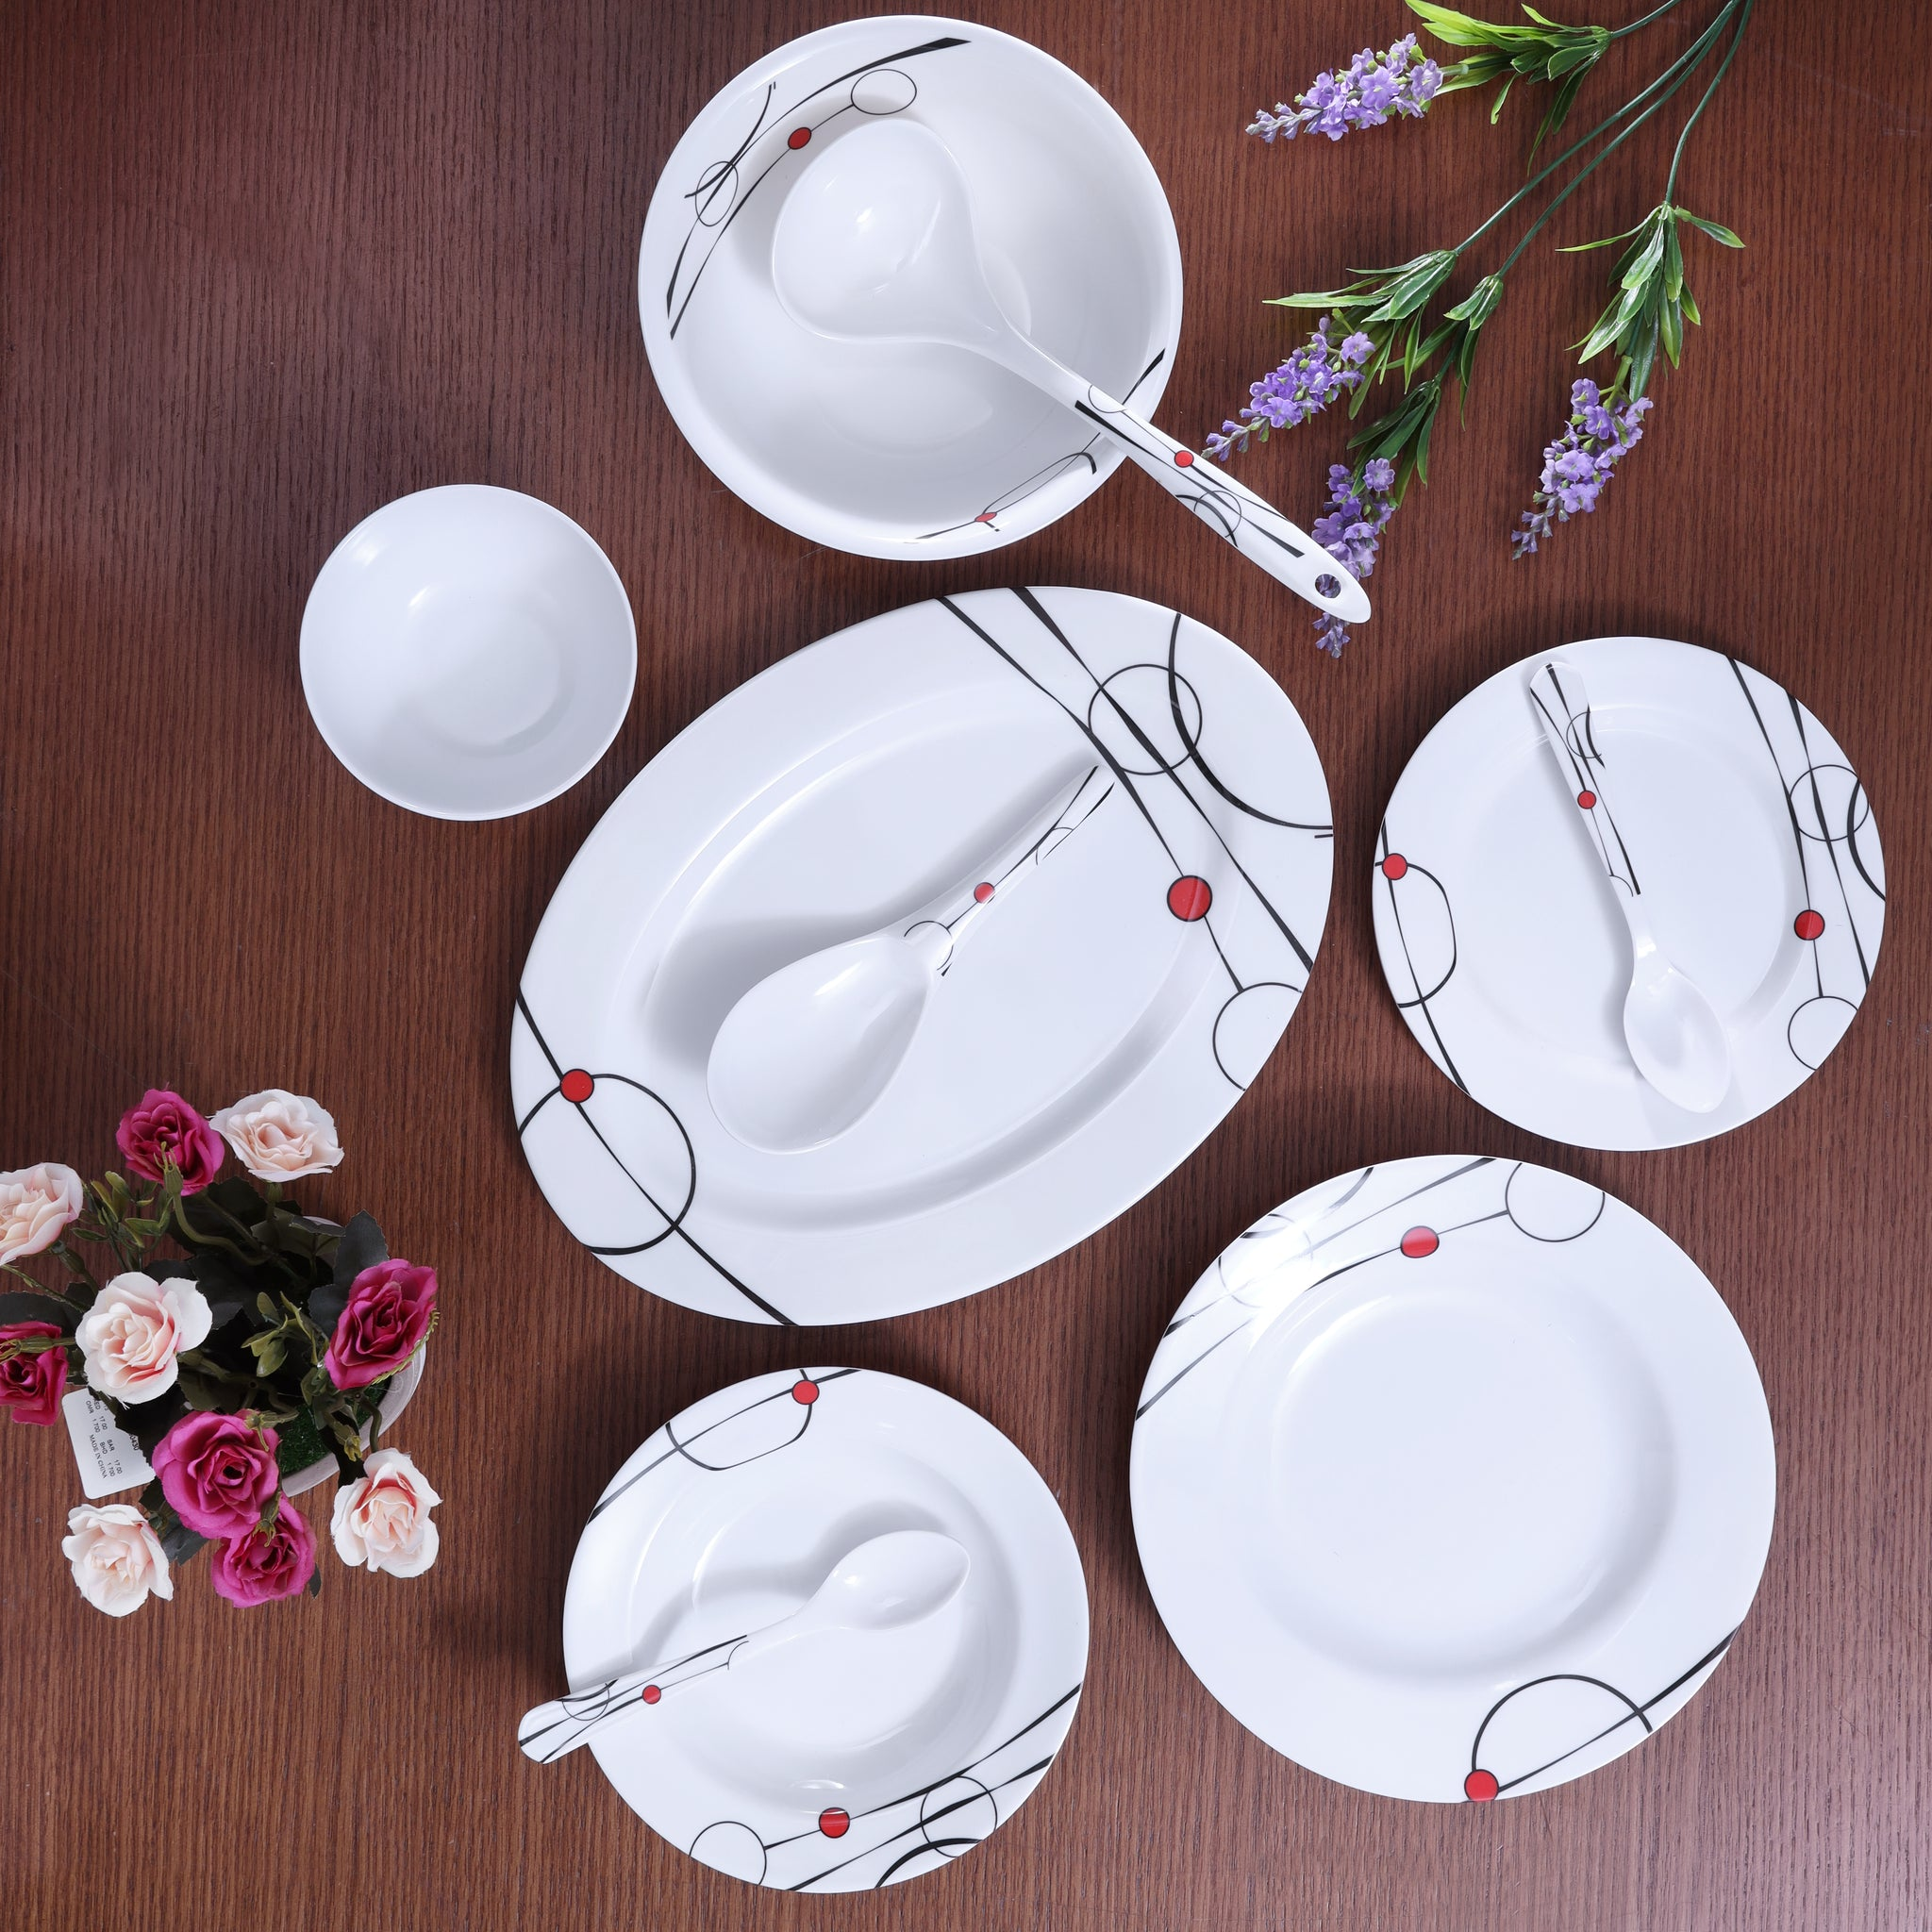 Royalford RF6719 Melamine Ware Dinner Set, 45 Pcs